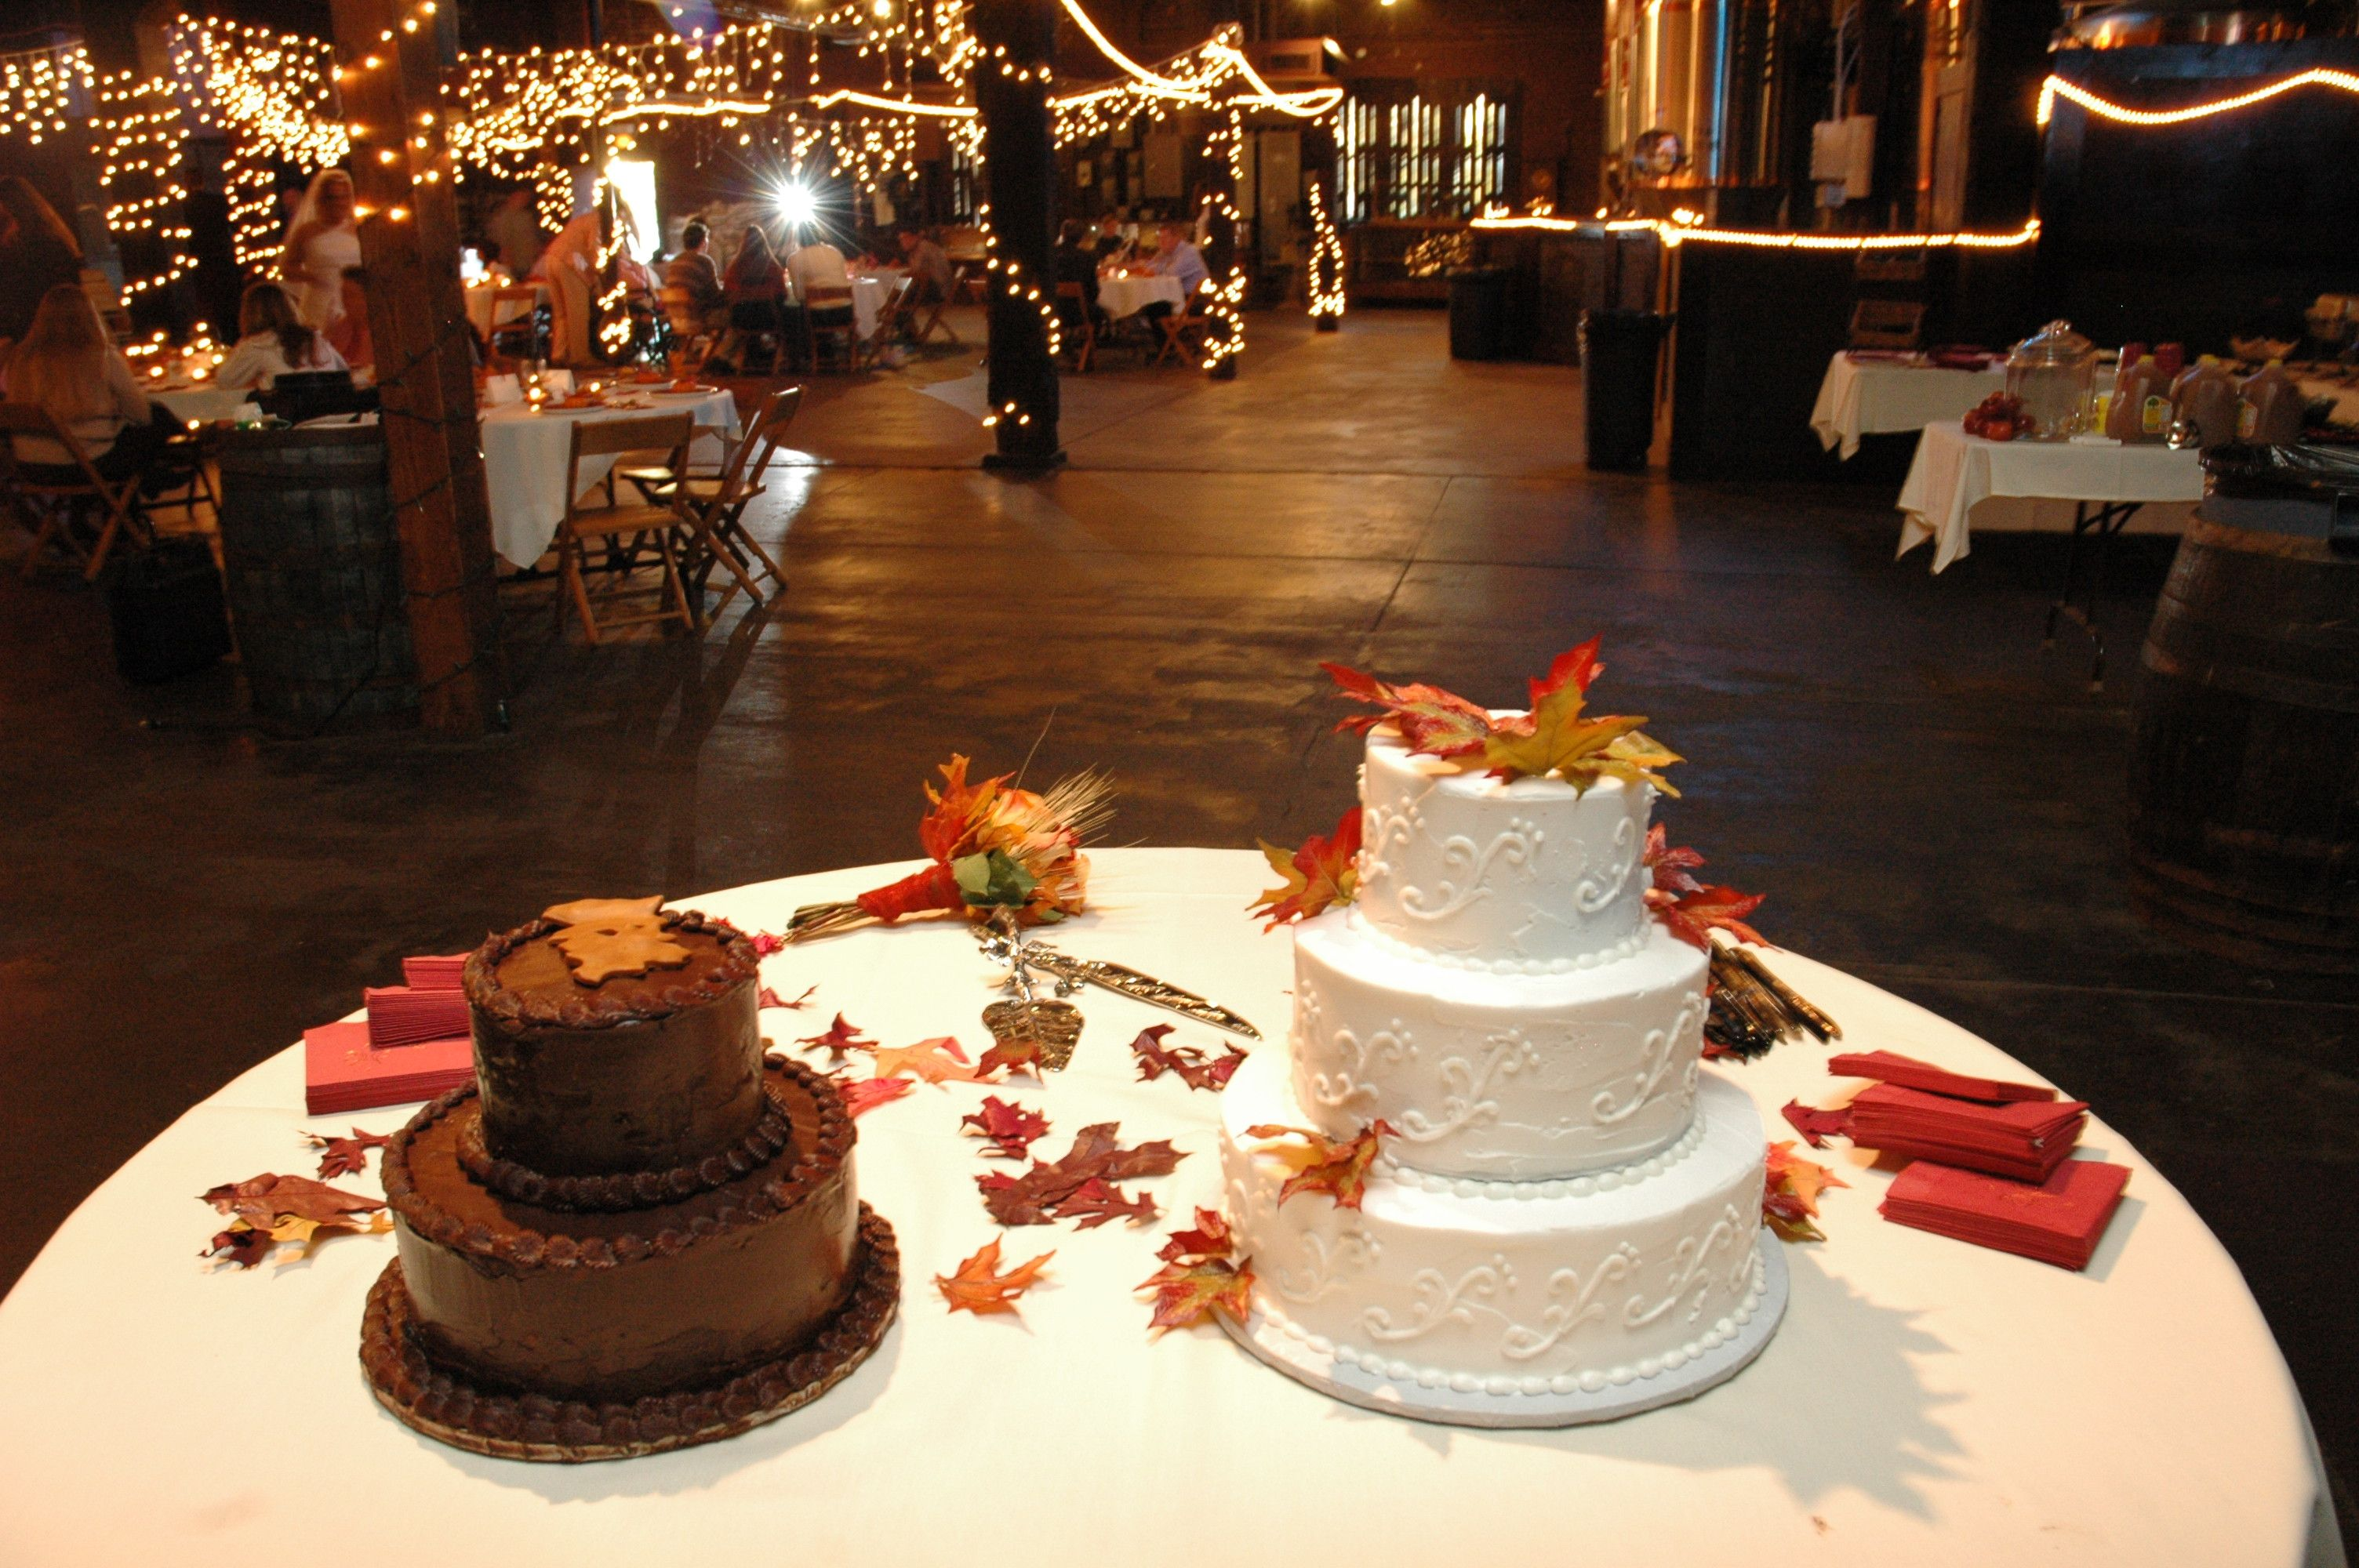 Cake Table with main cake and groom cake